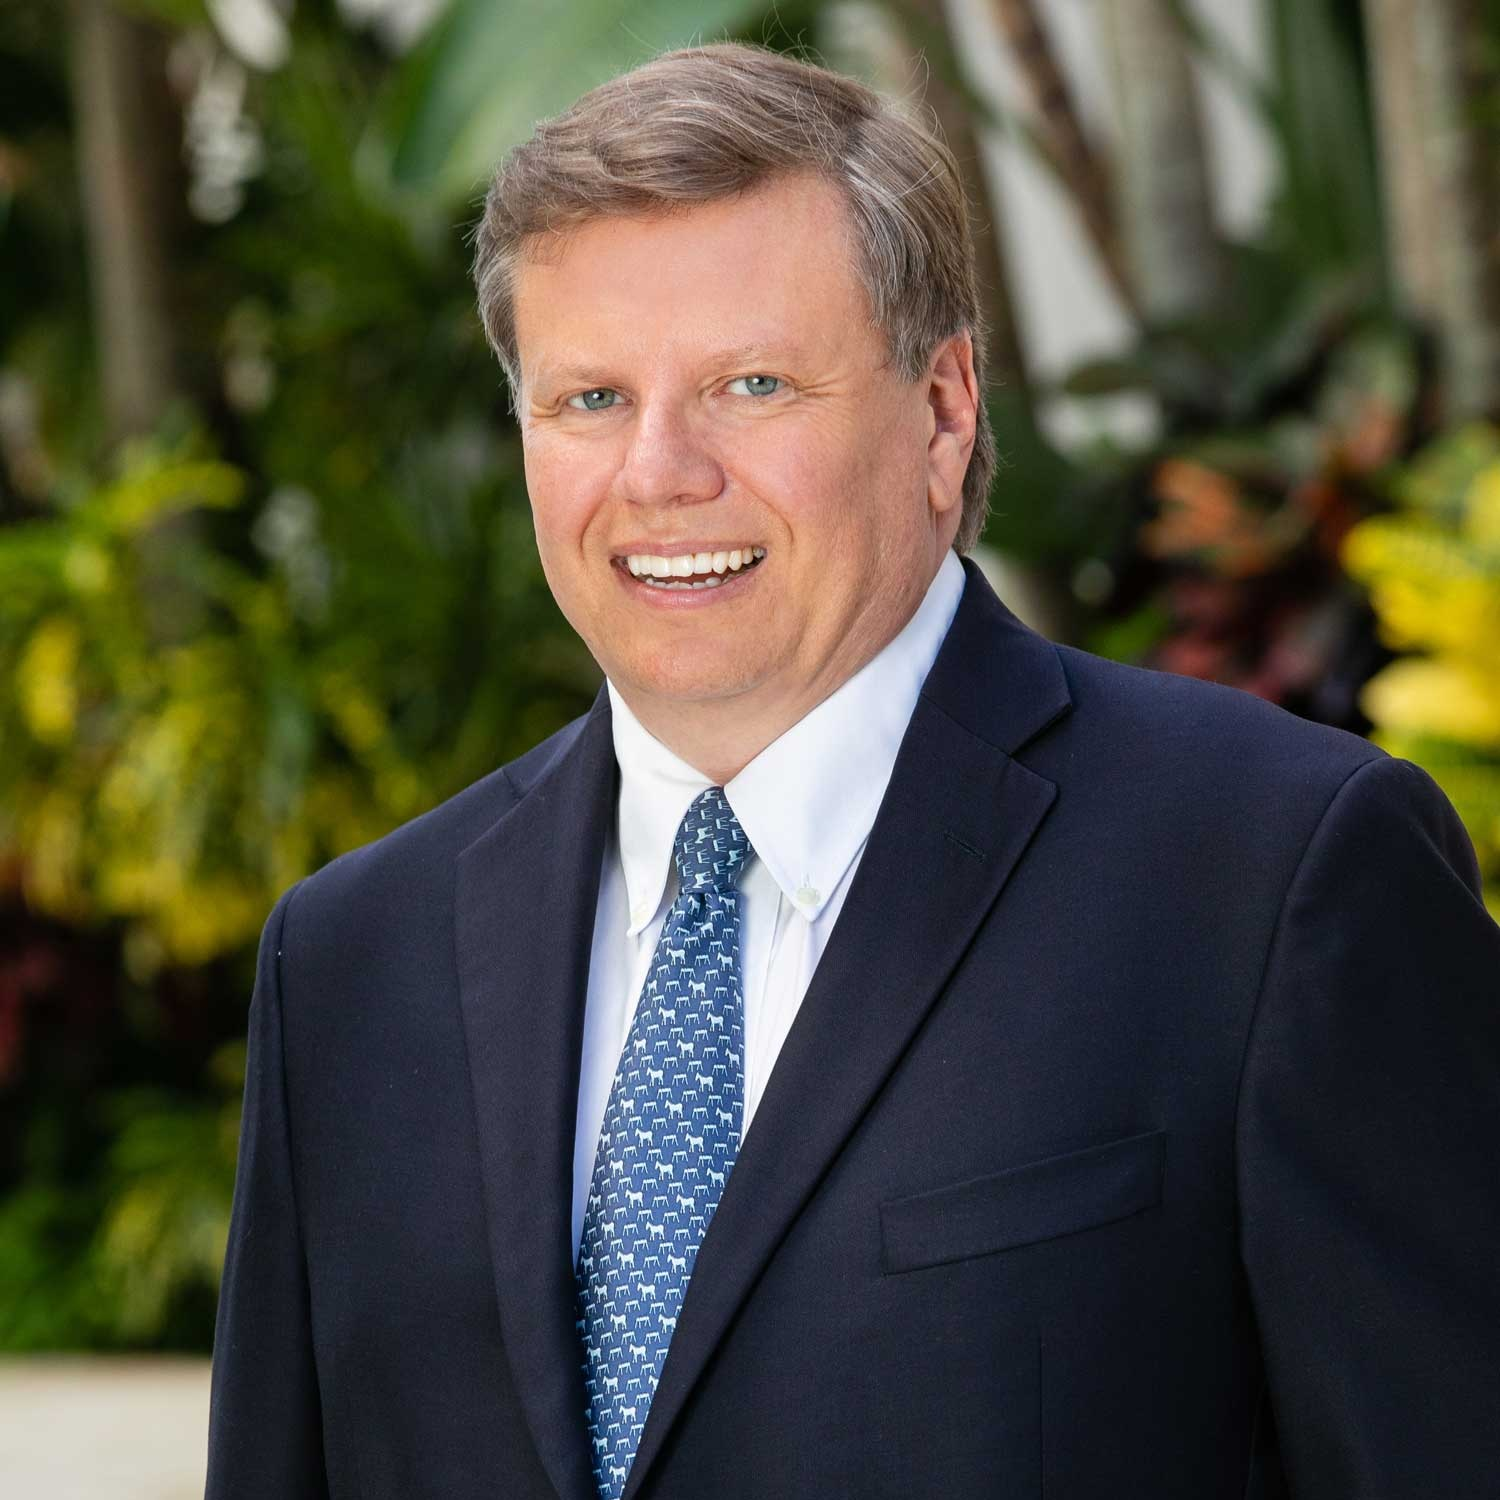 Earl J. Campazzi, Concierge Physician in Palm Beach, Florida